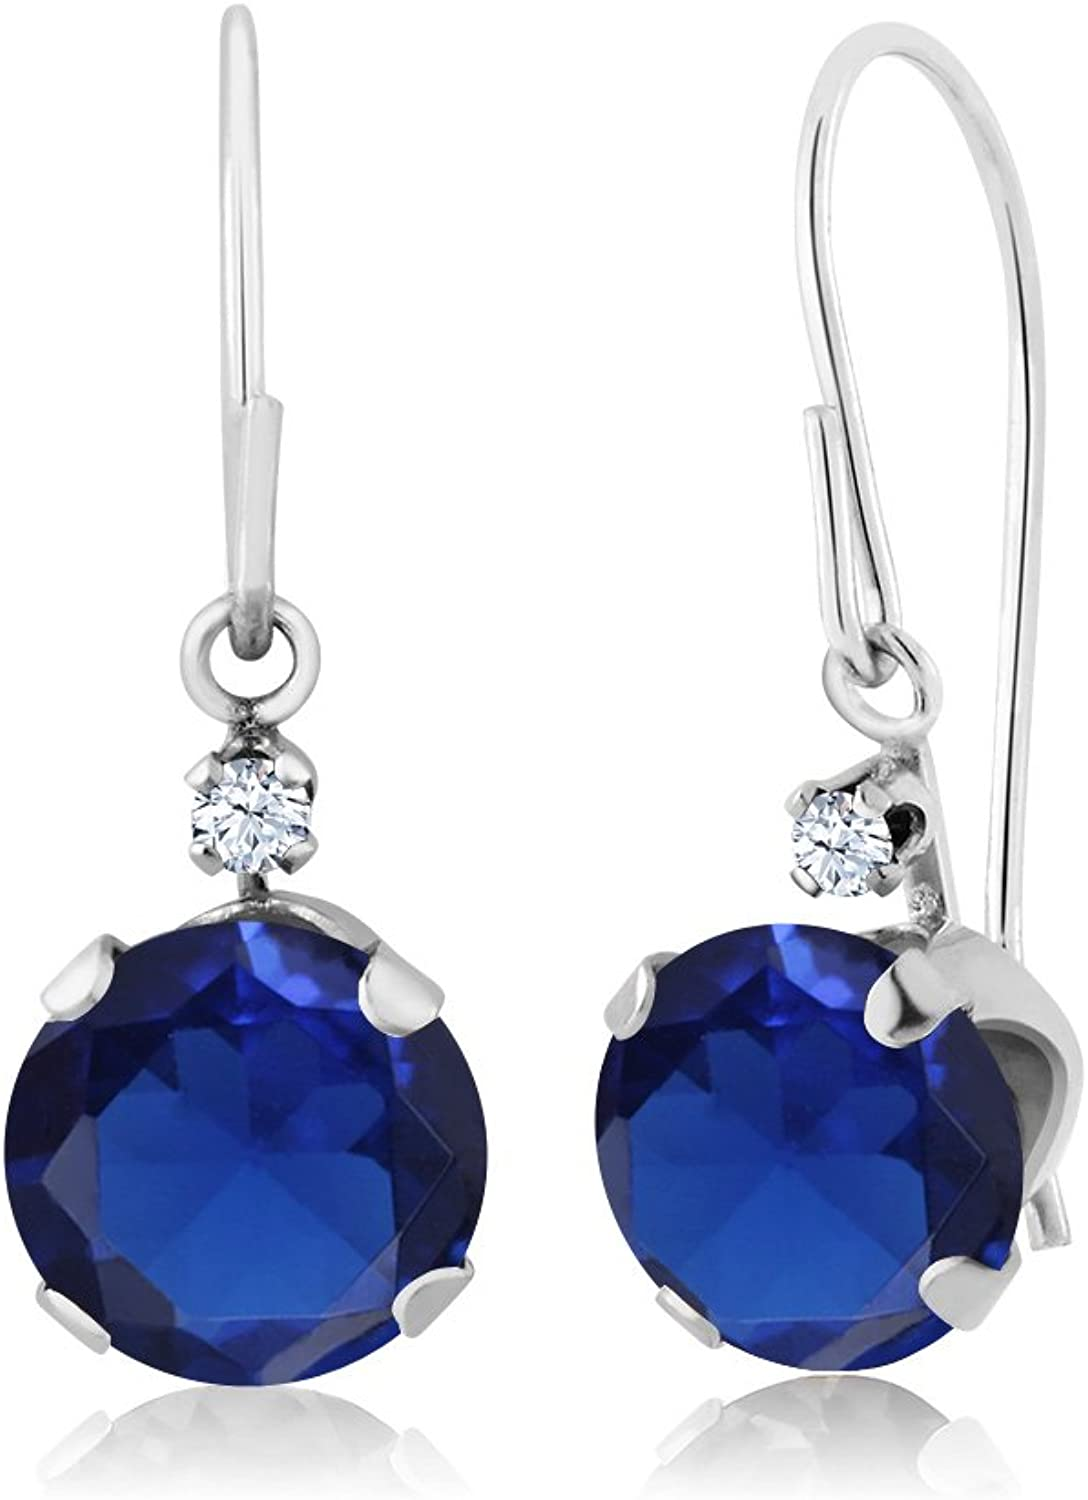 2.03 Ct Round bluee Simulated Sapphire 14K White gold Earrings